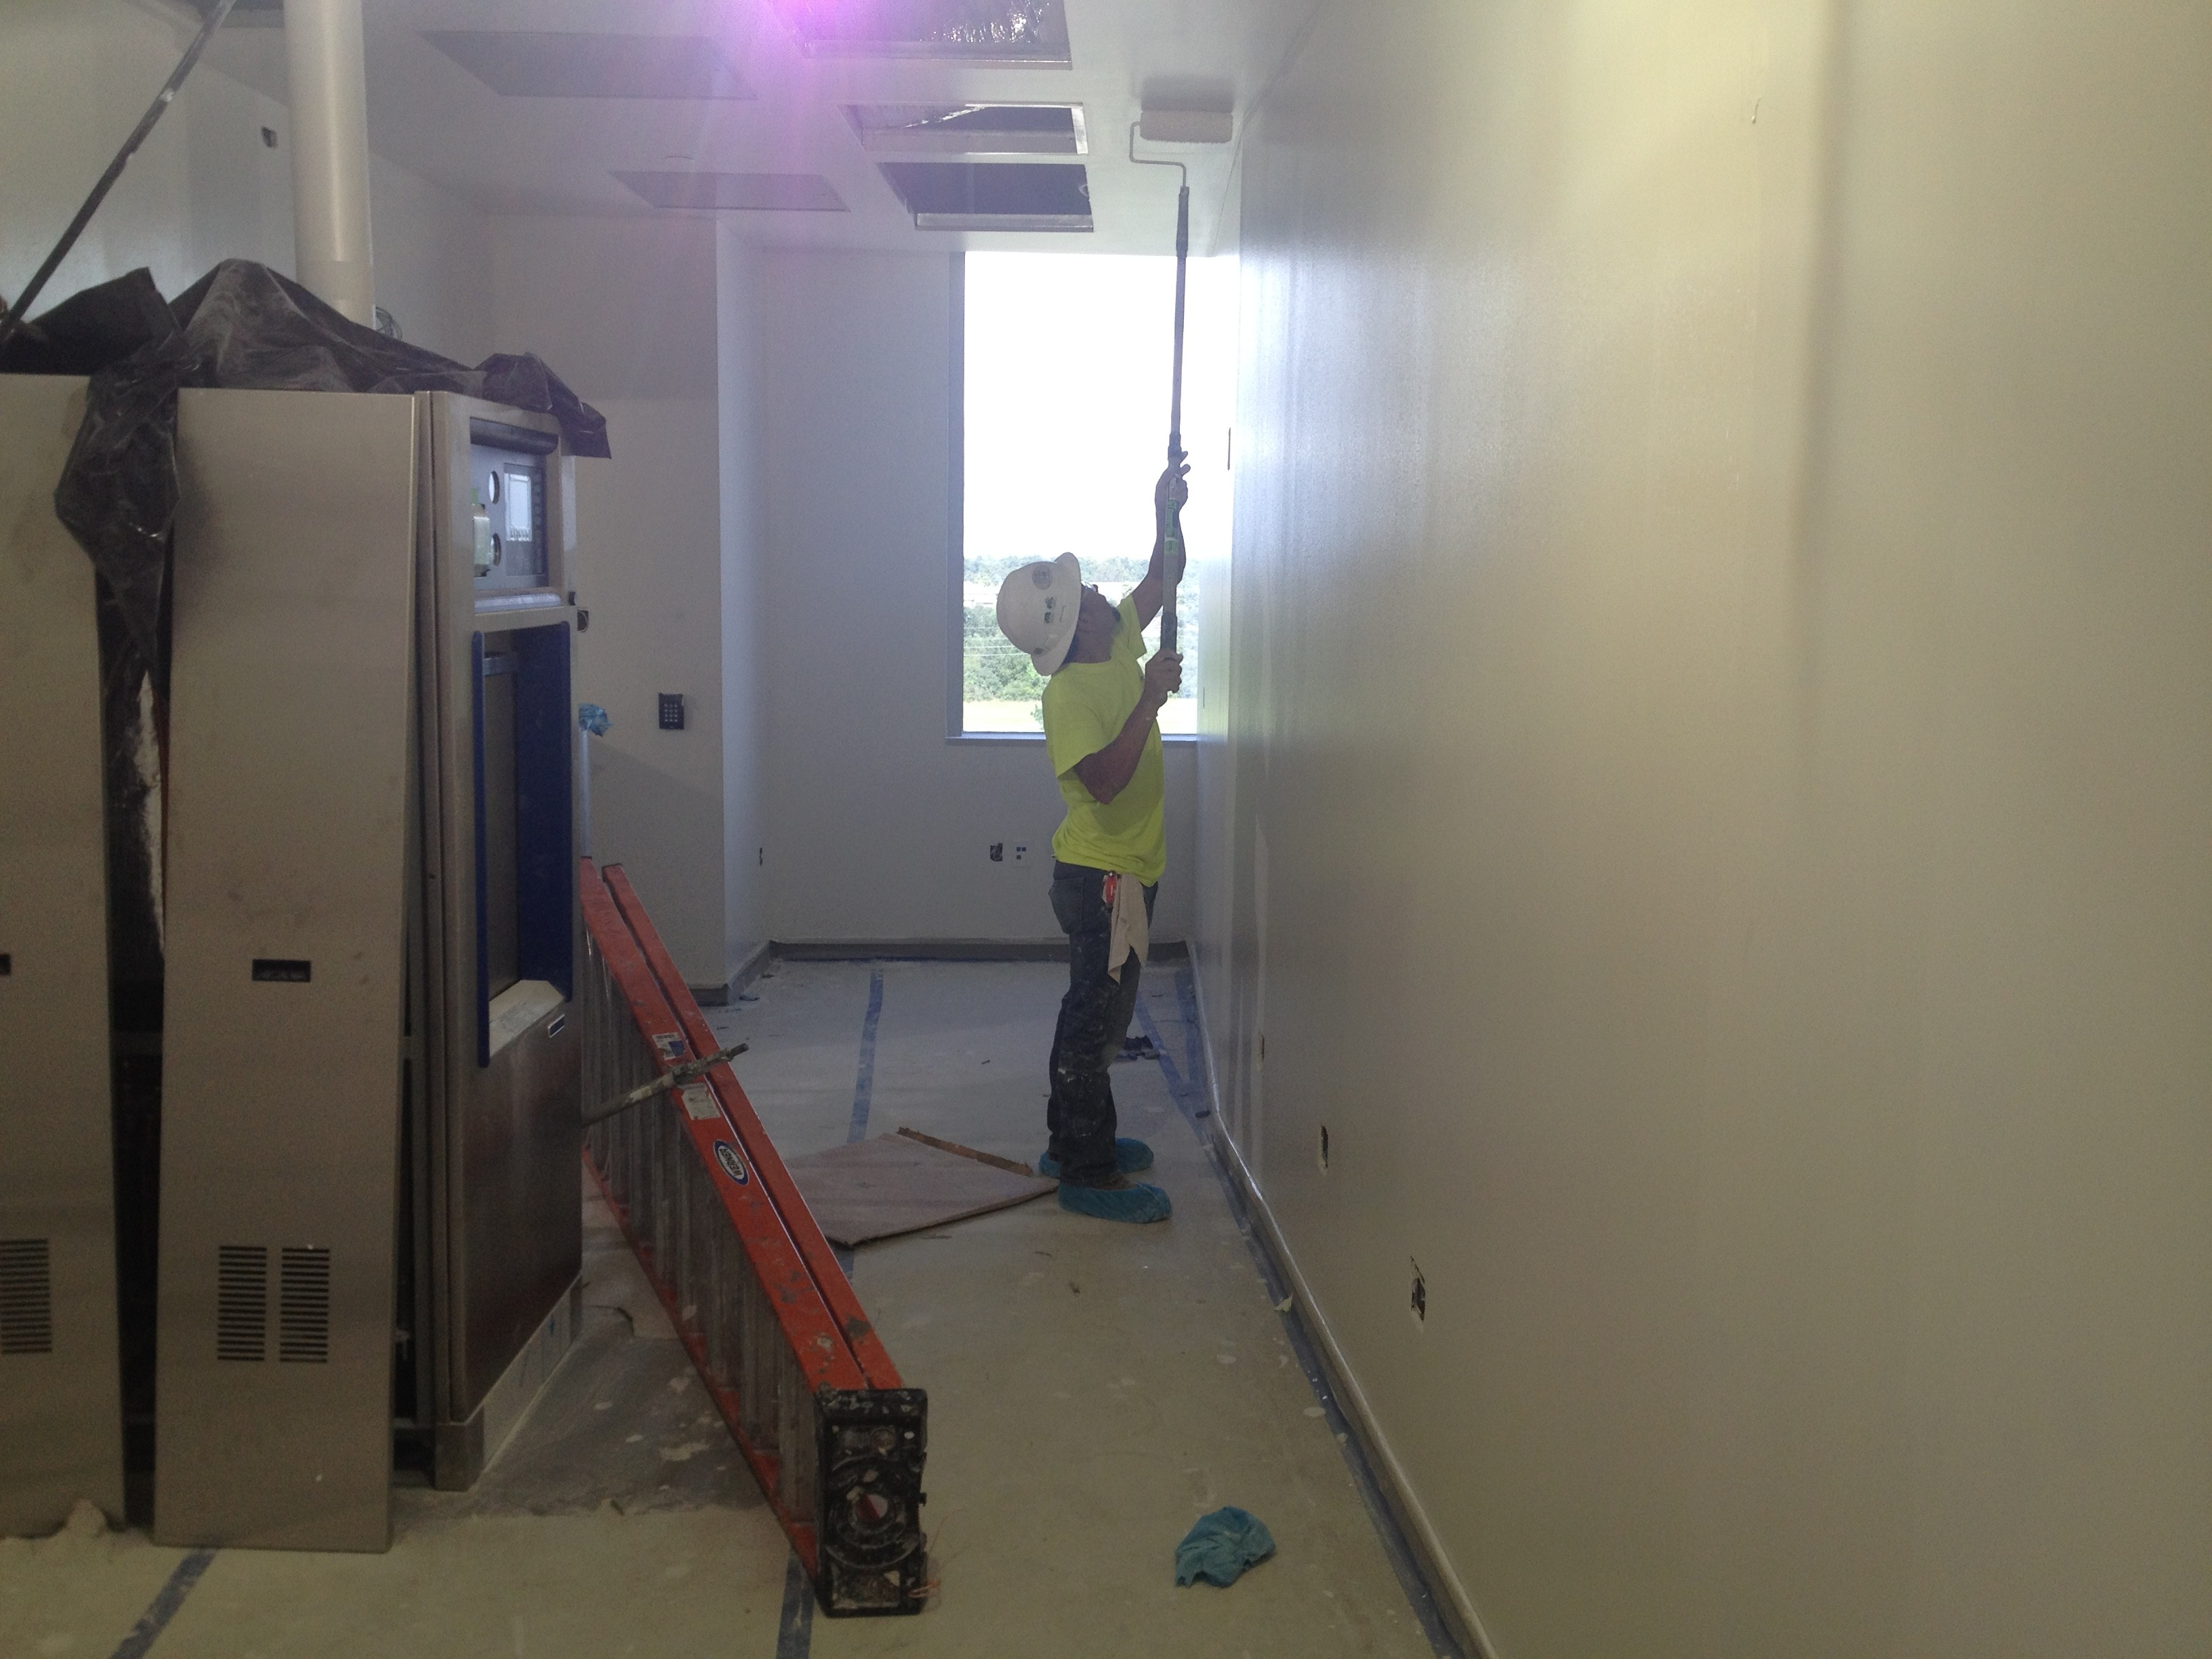 Workers finish construction on an 8-bed isolation unit at Texas Childrens Hospital in Katy. The high-tech unit will treat children with highly infectious diseases, including Ebola, MERS, and flu. Photo/Carrie Feibel